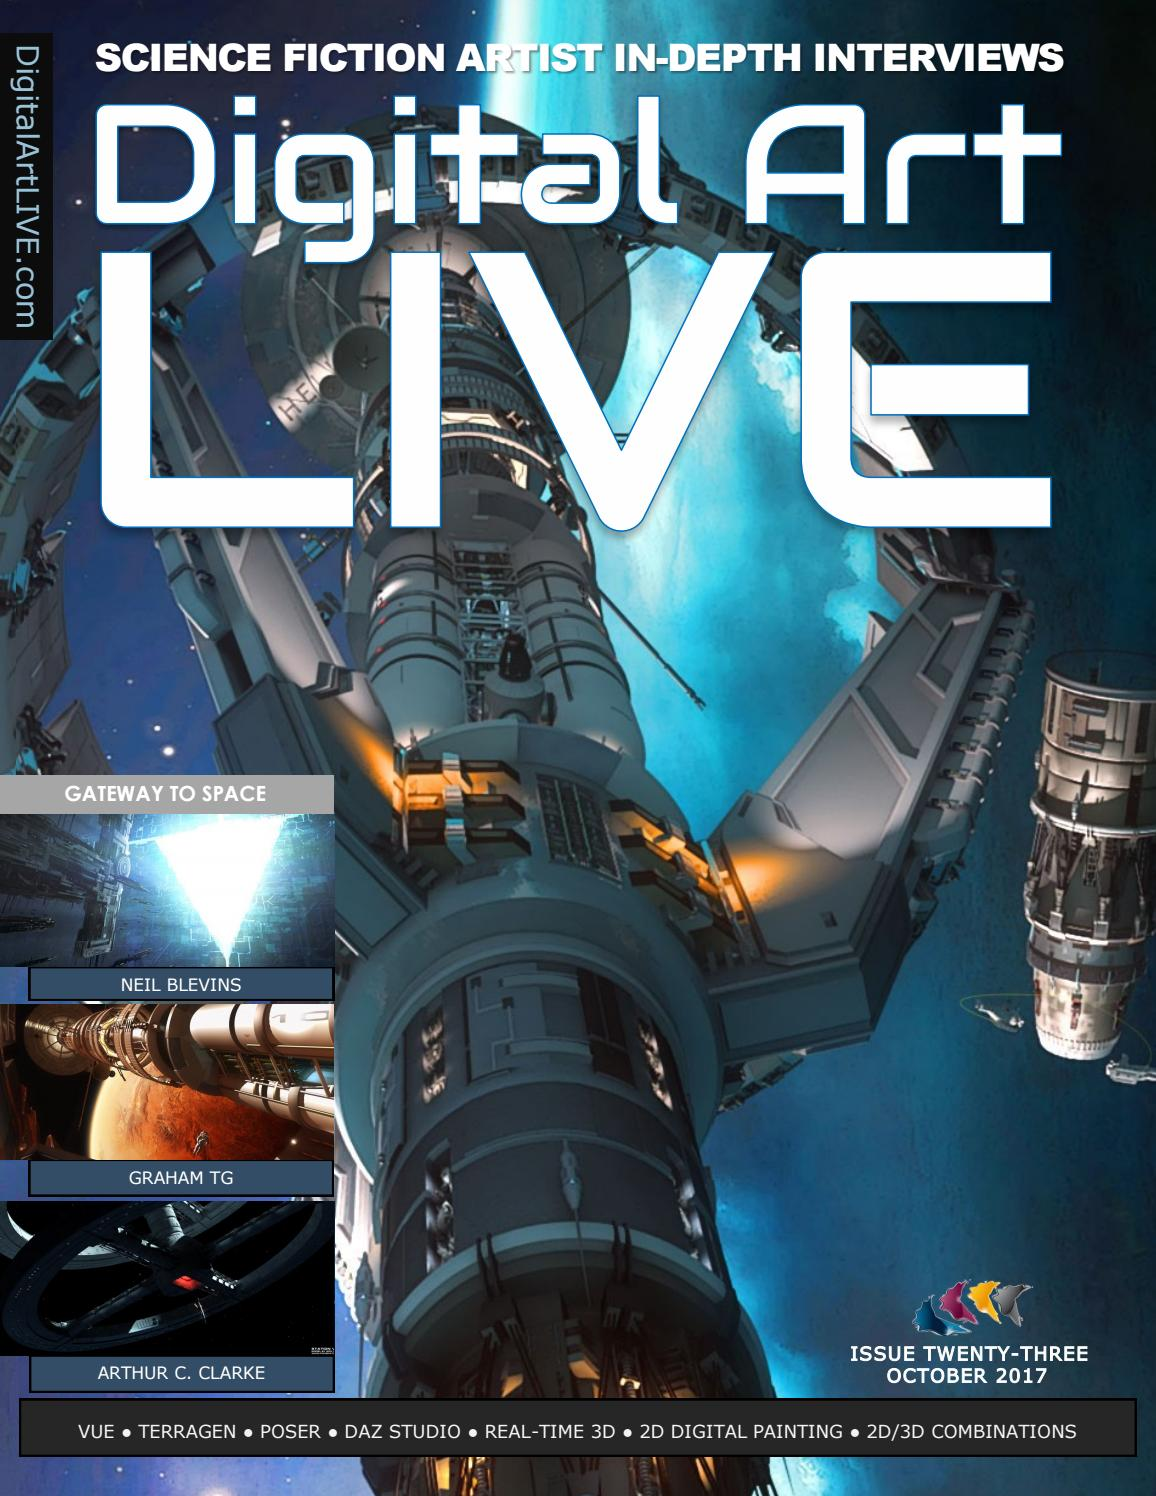 Digital art live issue 23 by digital art live issuu yelopaper Image collections